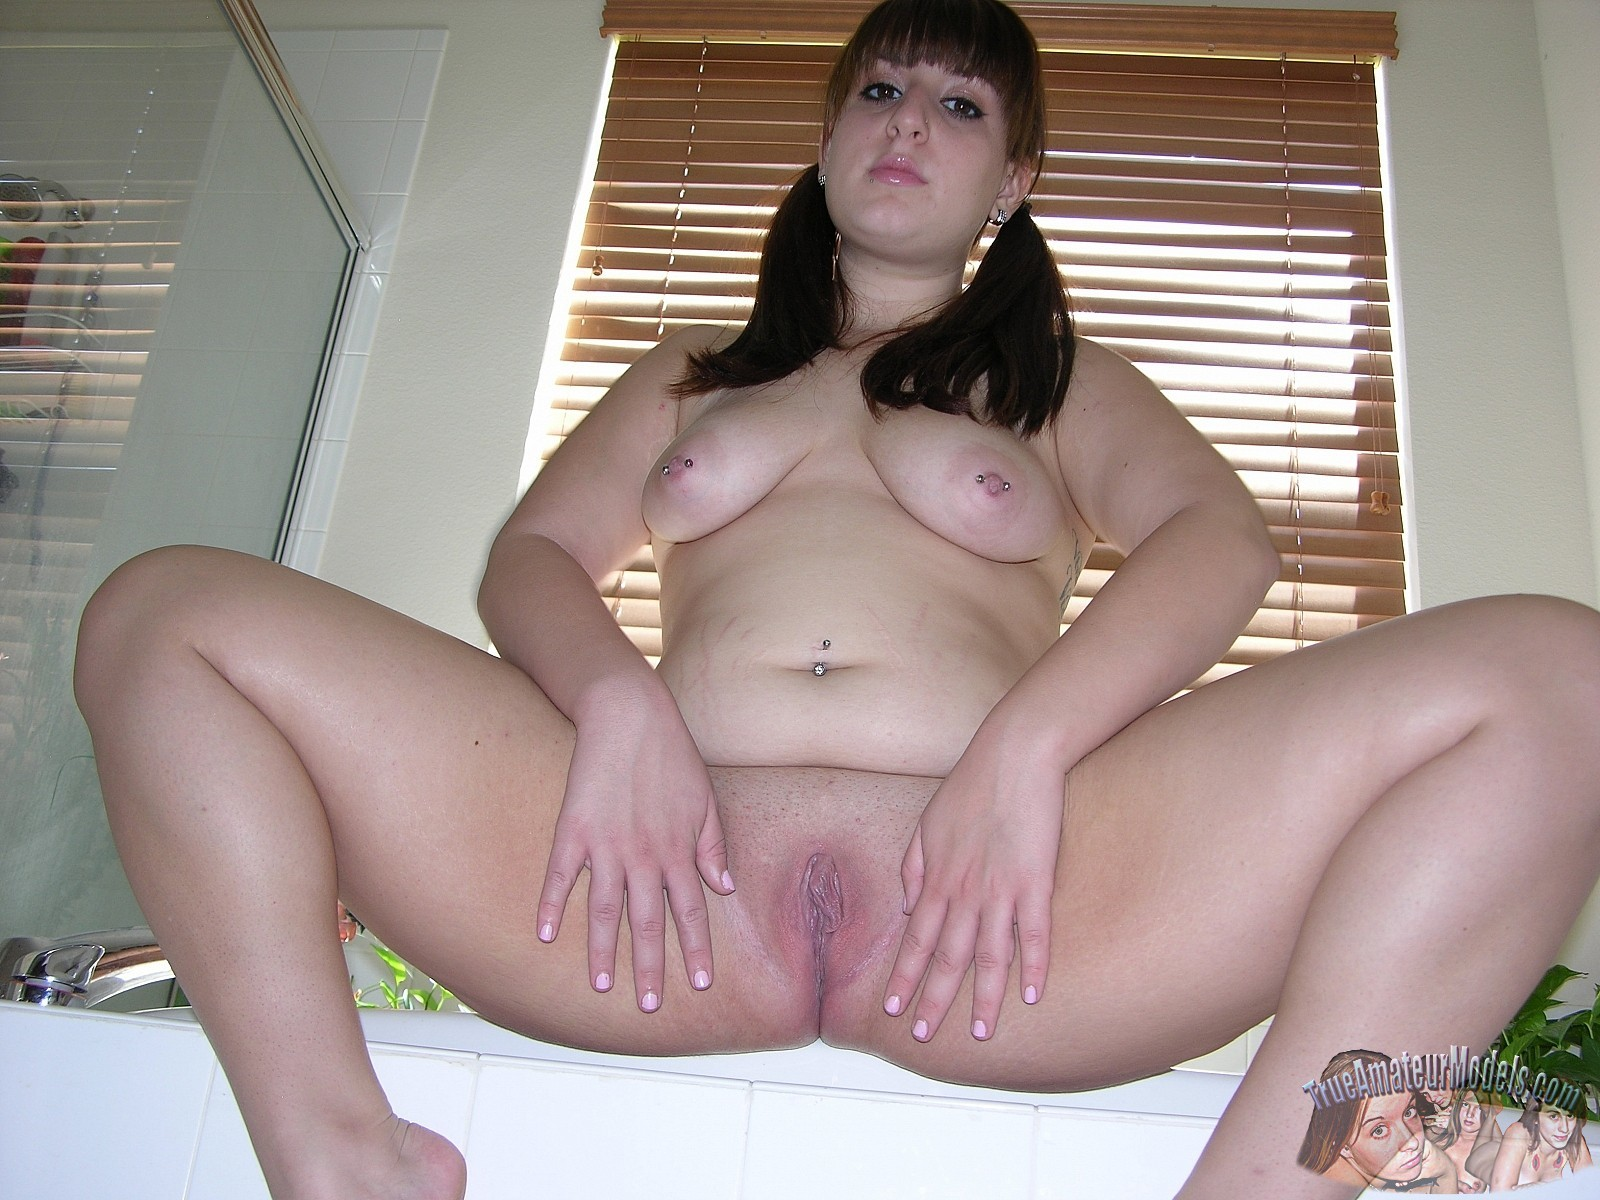 Chubby Bbw Teen Models Nude And Shows Her Fat Ass